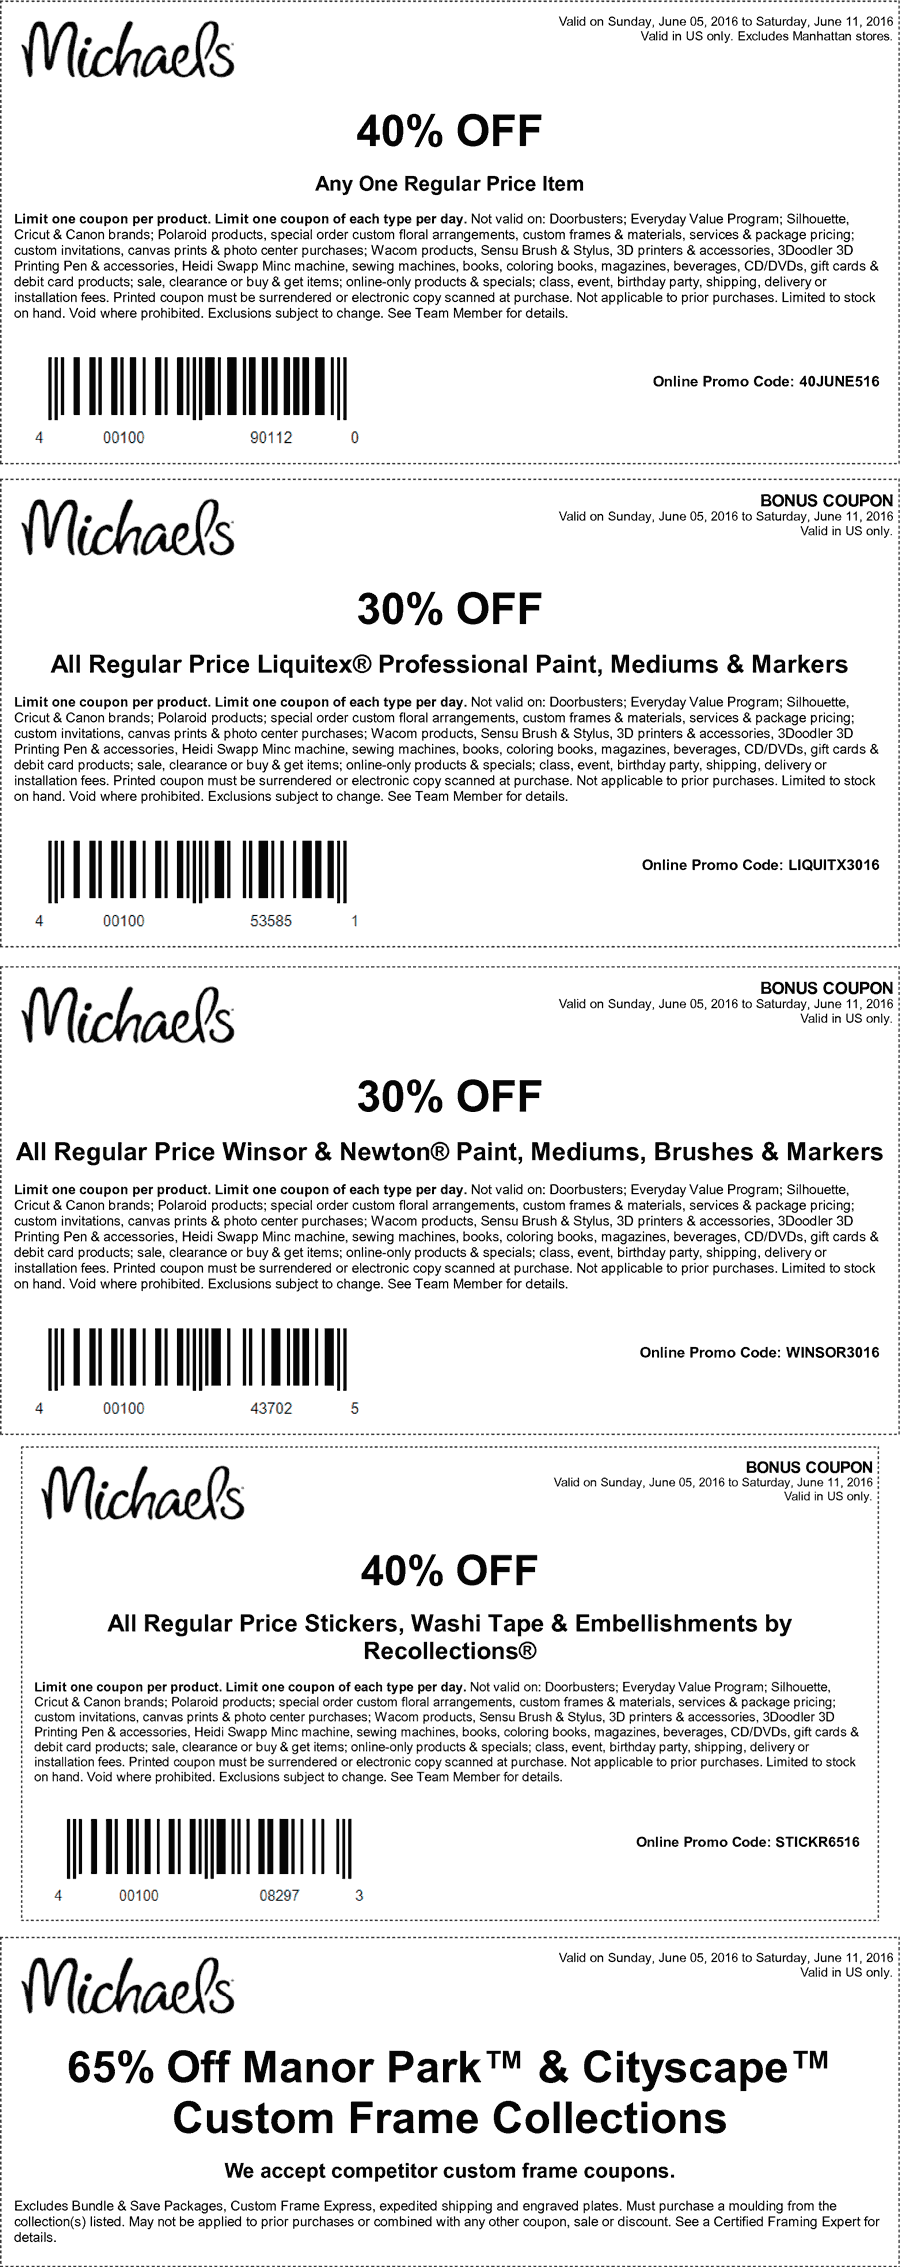 Michaels Coupon March 2017 40% off a single item & more at Michaels, or online via promo code 40JUNE516